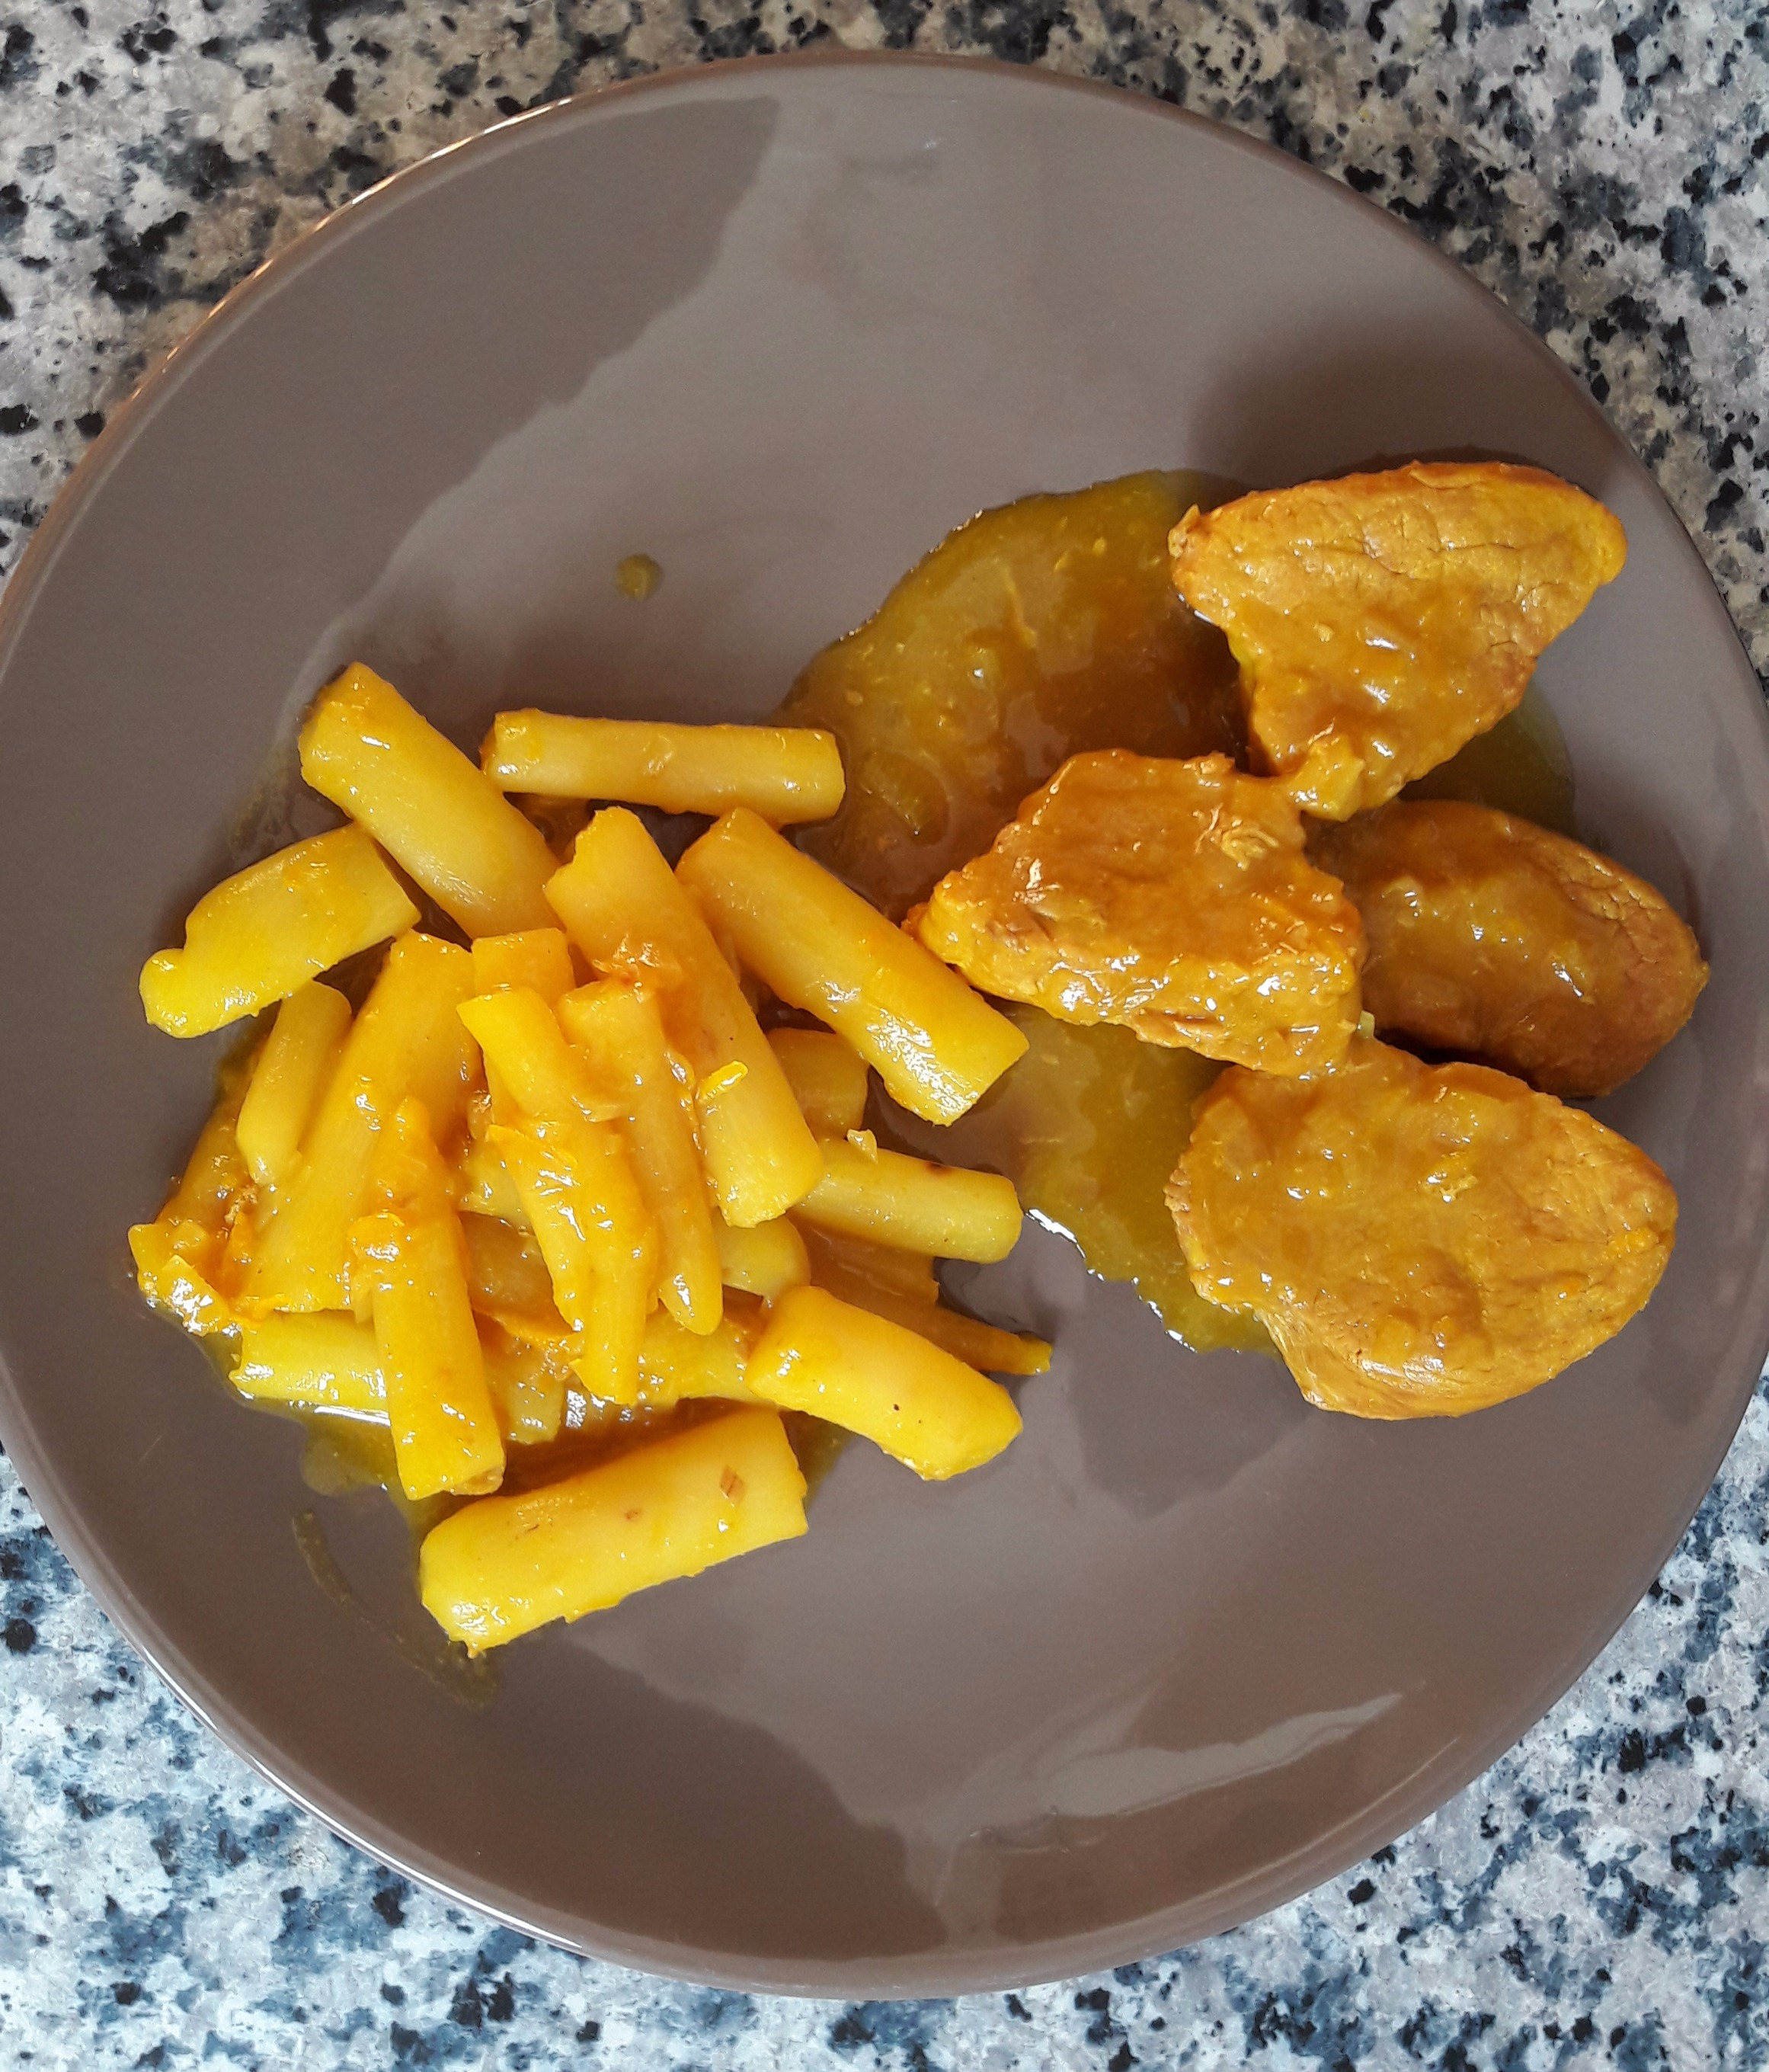 Filet mignon au curcuma et orange